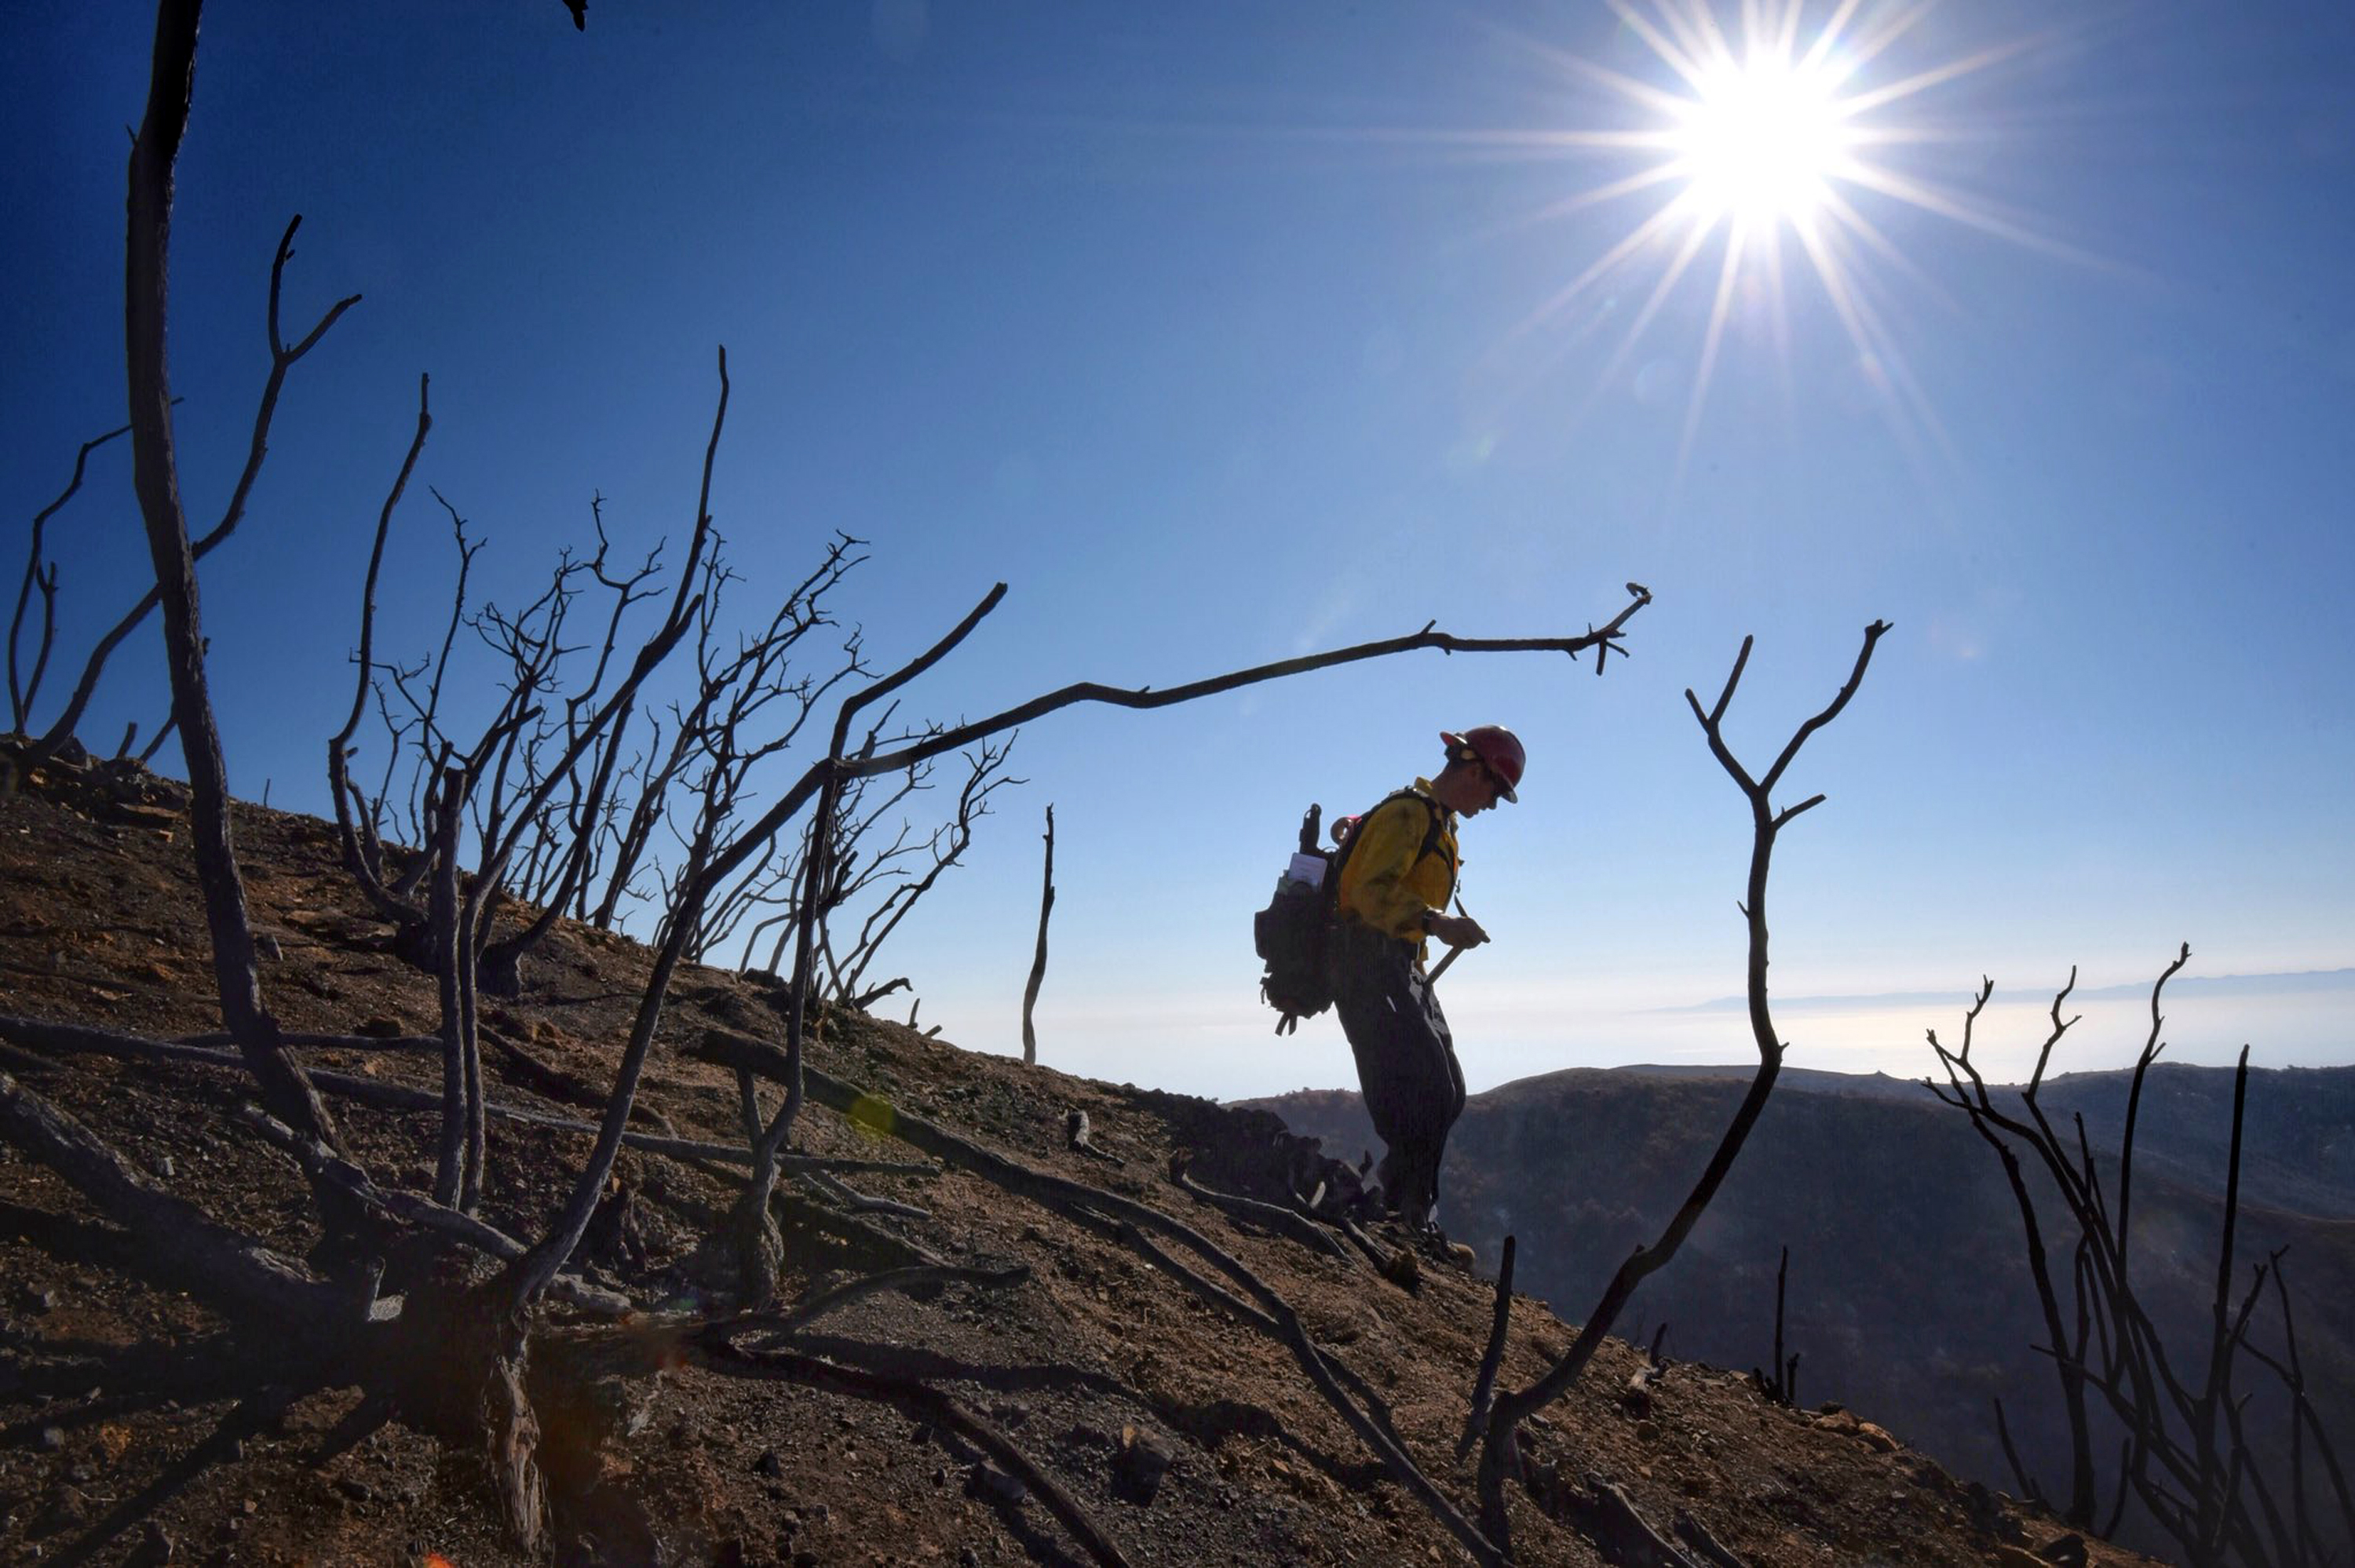 In this photo provided by the Santa Barbara County Fire Department, Santa Barbara County Fire Capt. Ryan Thomas hikes down steep terrain below East Camino Cielo to meet with his crew and root out and extinguish smoldering hot spots in Santa Barbara, Calif., Tuesday, Dec. 19, 2017. Officials estimate that the Thomas Fire will grow to become the biggest in California history before full containment, expected by Jan. 7, 2018. (Mike Eliason/Santa Barbara County Fire Department via AP)